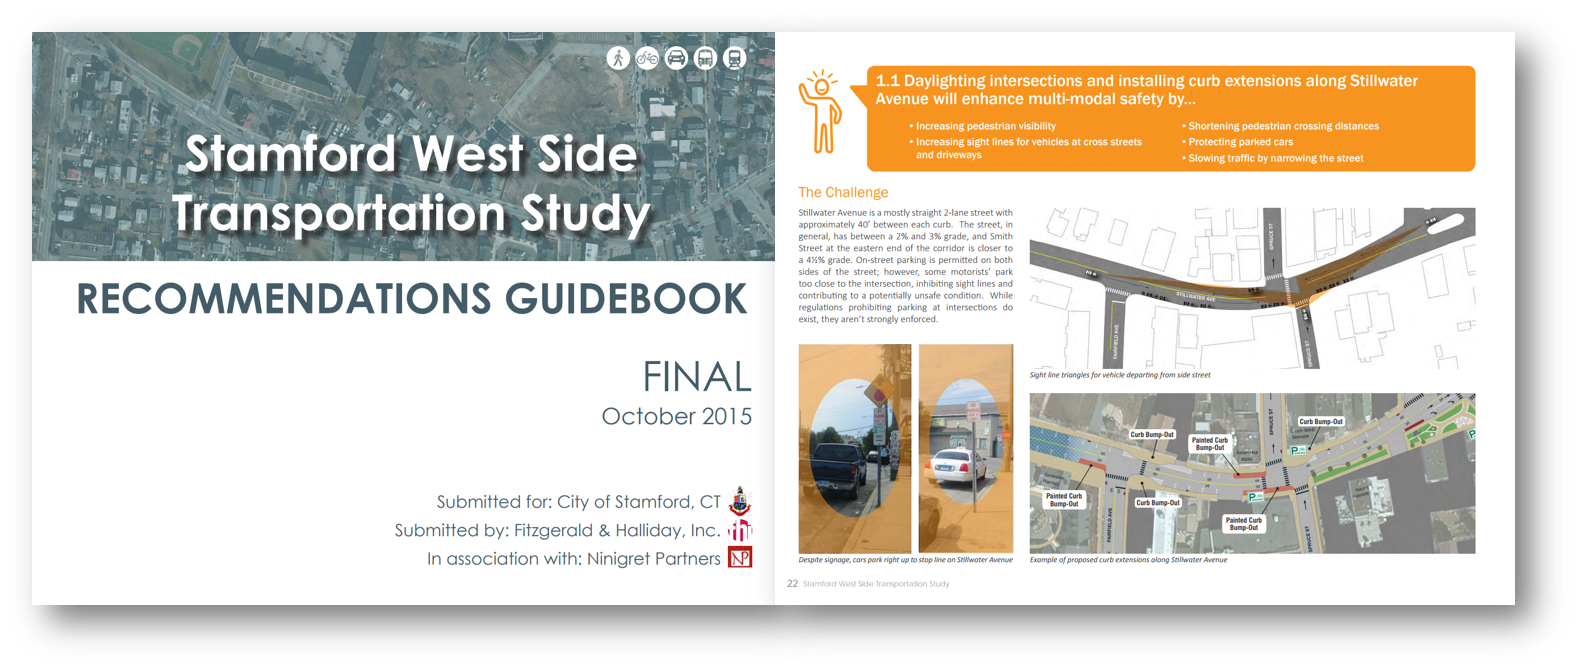 The POCD document should be designed for and useful to a wide audience. This report from FHI's work in Stamford was designed for City leaders and neighborhood stakeholders.